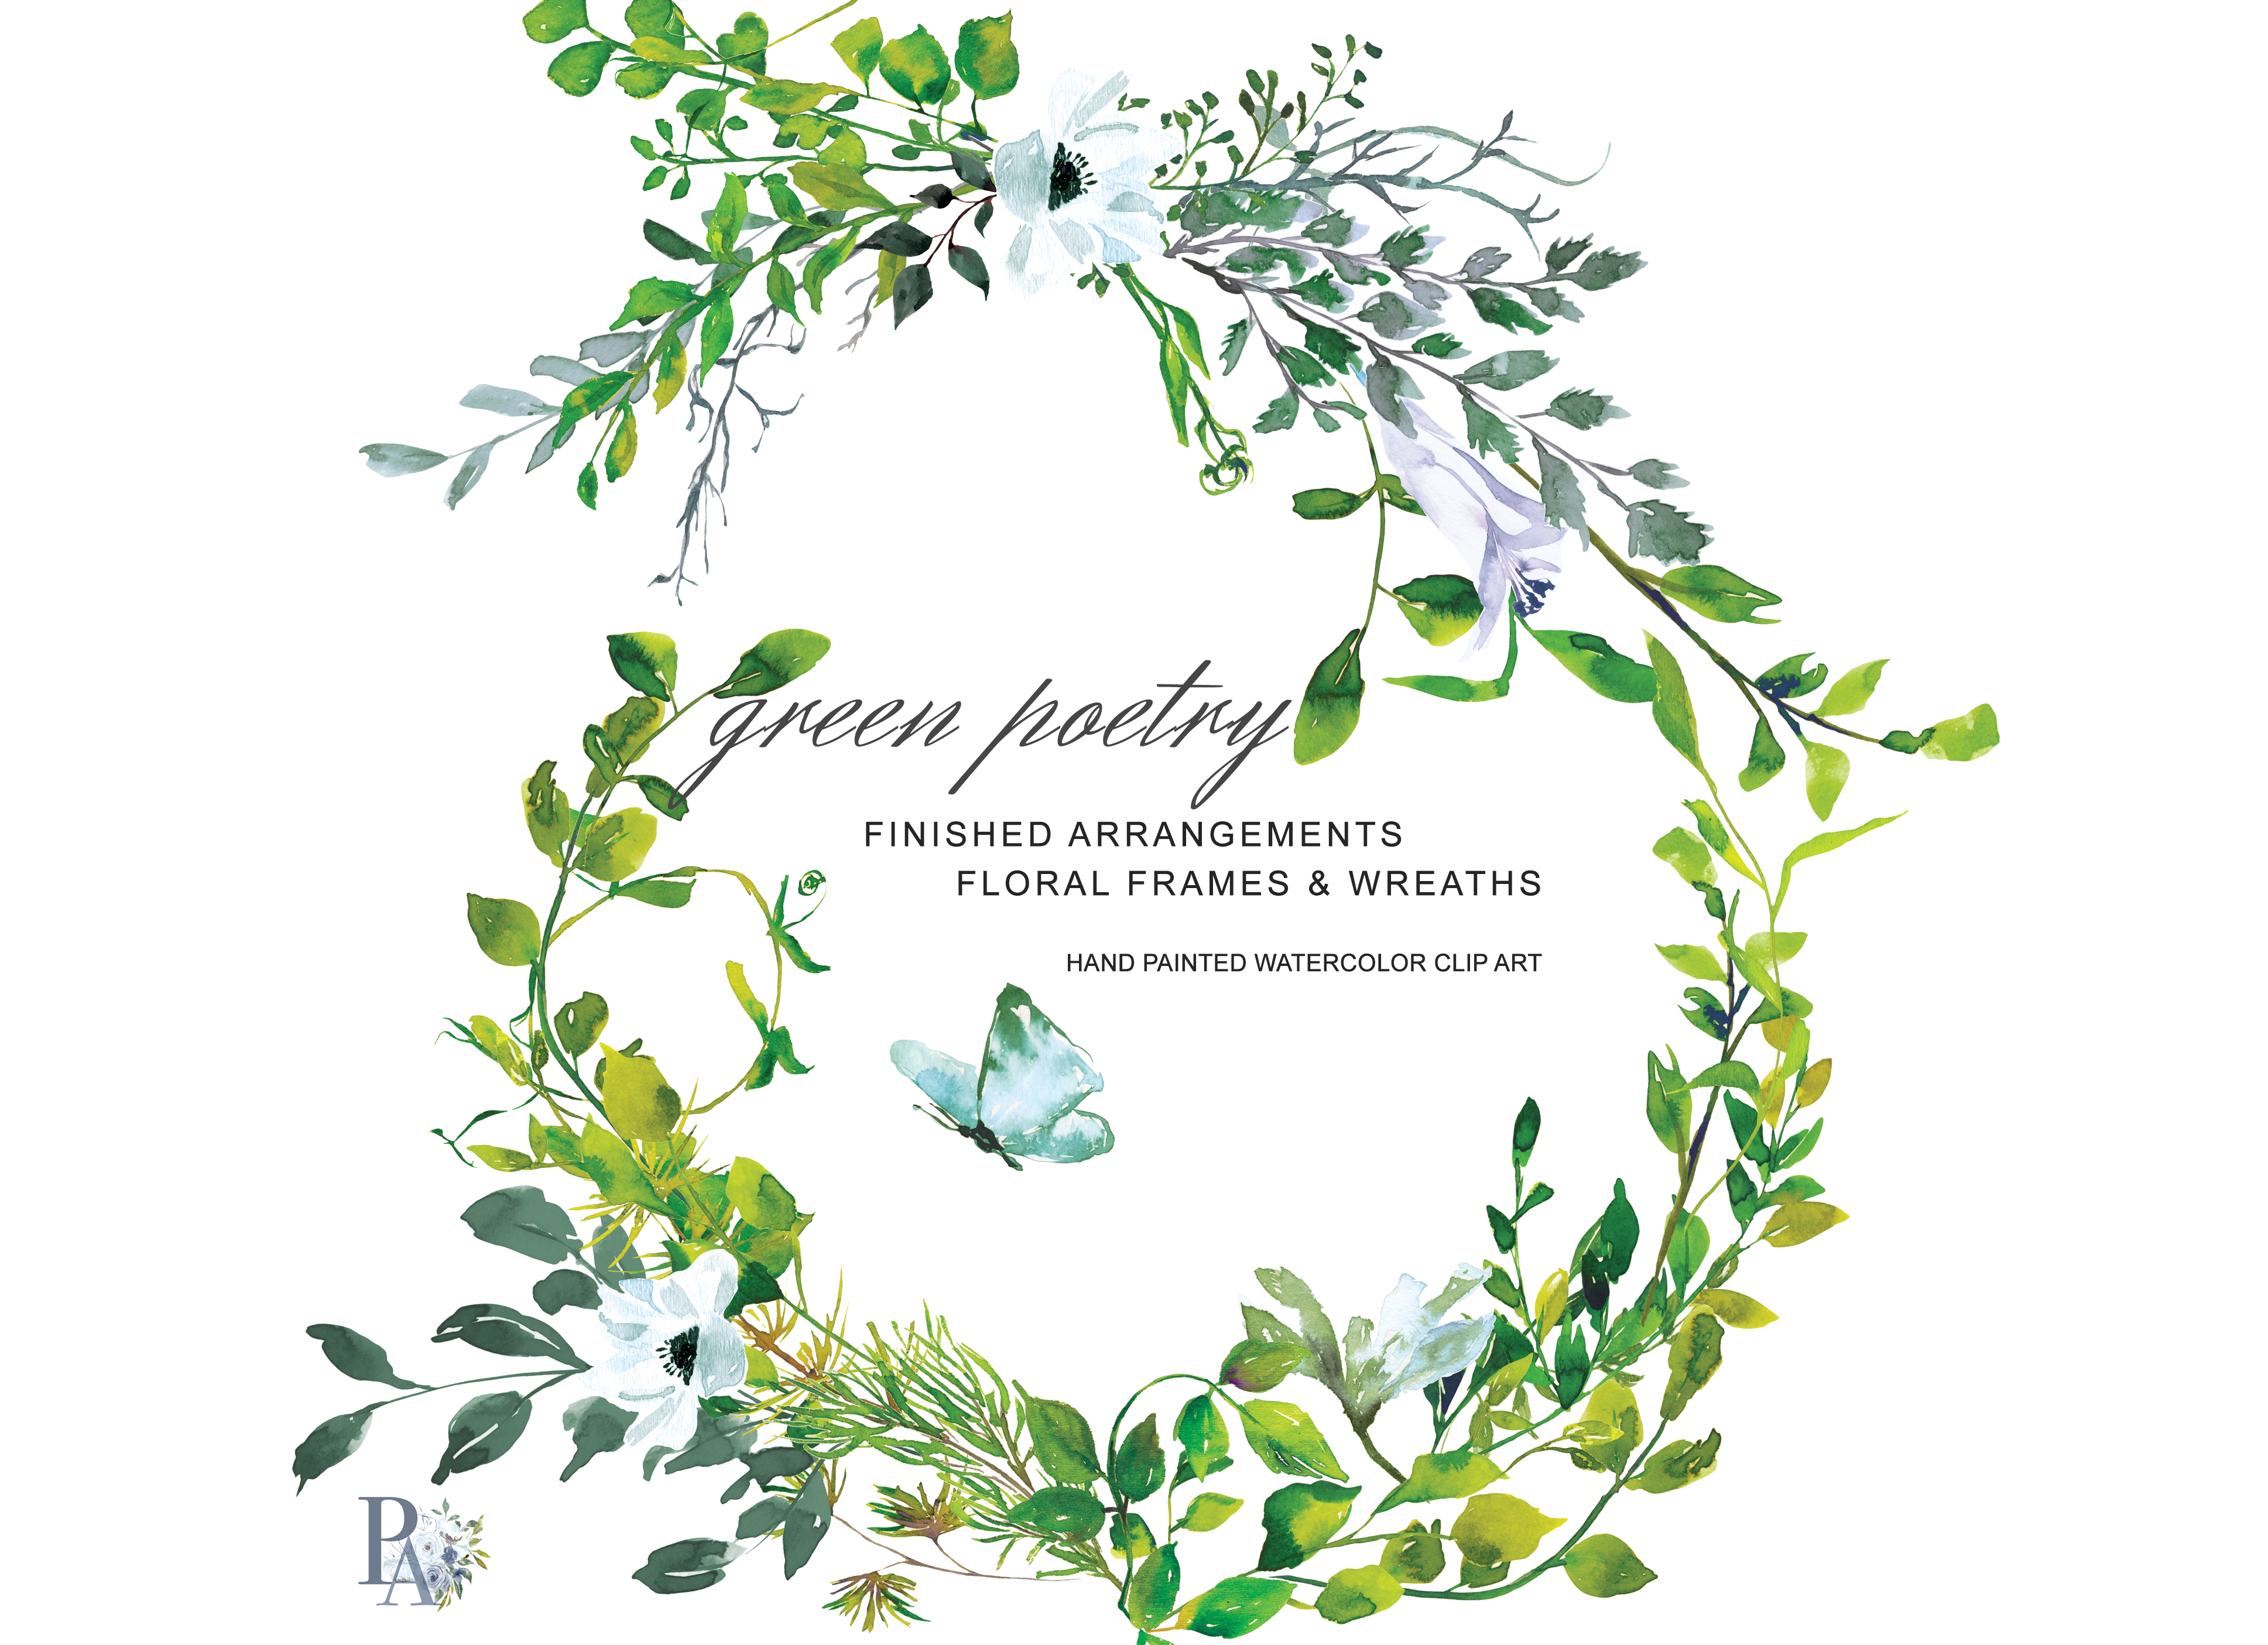 Hand Painted Watercolor Greenery Clipart Example Image 1